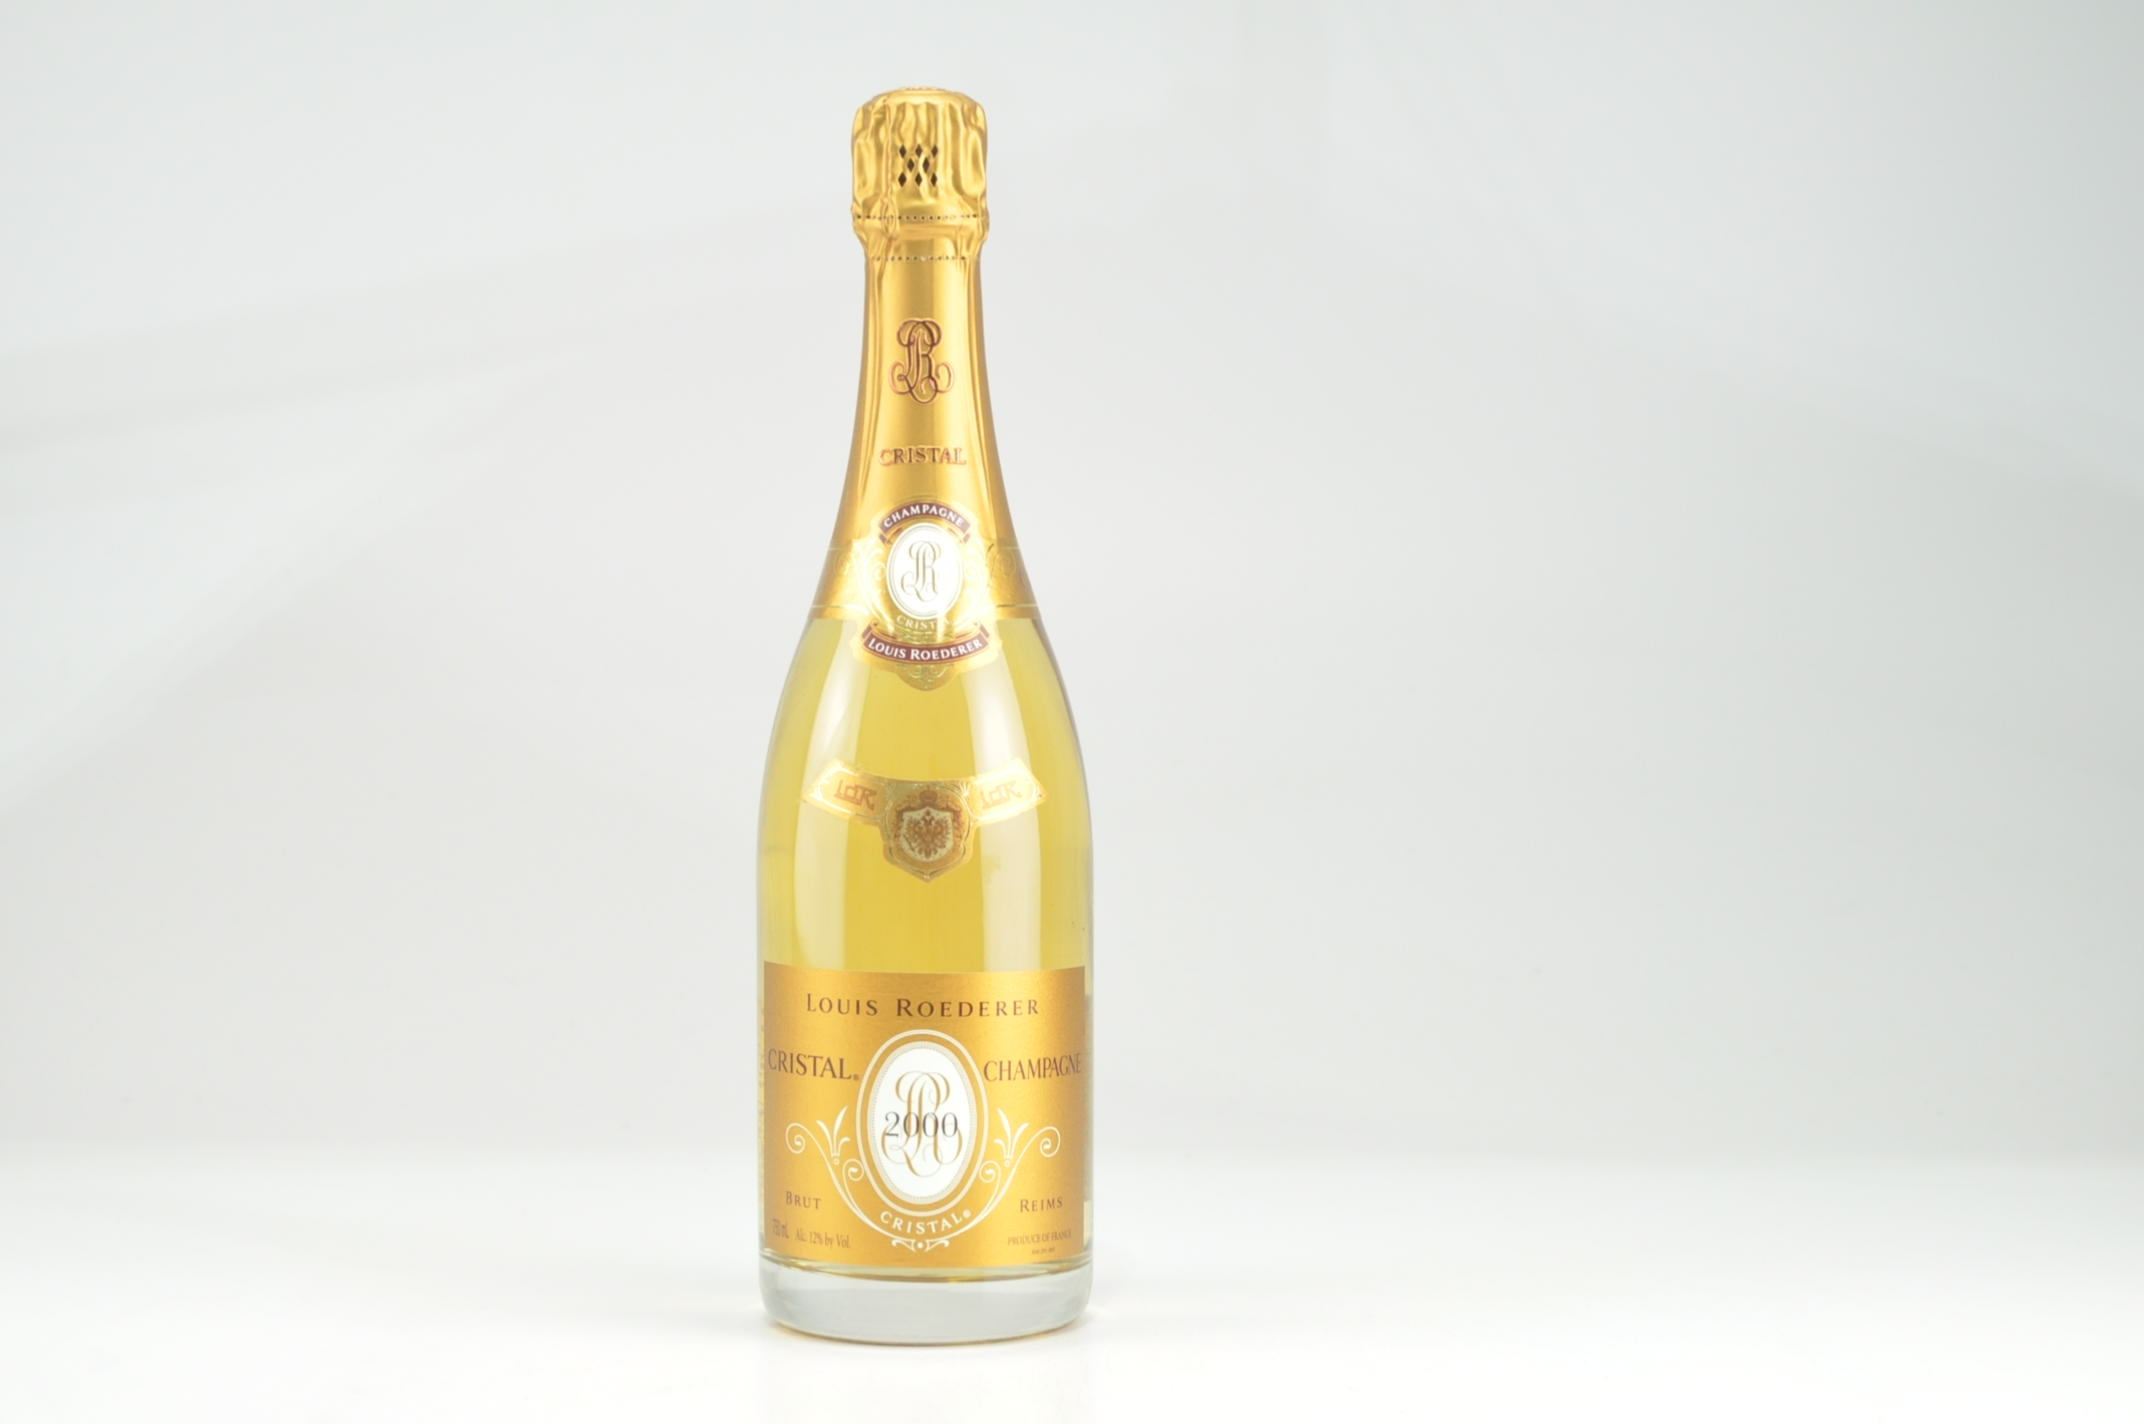 2000 Louis Roederer Cristal, Champagne RP--95